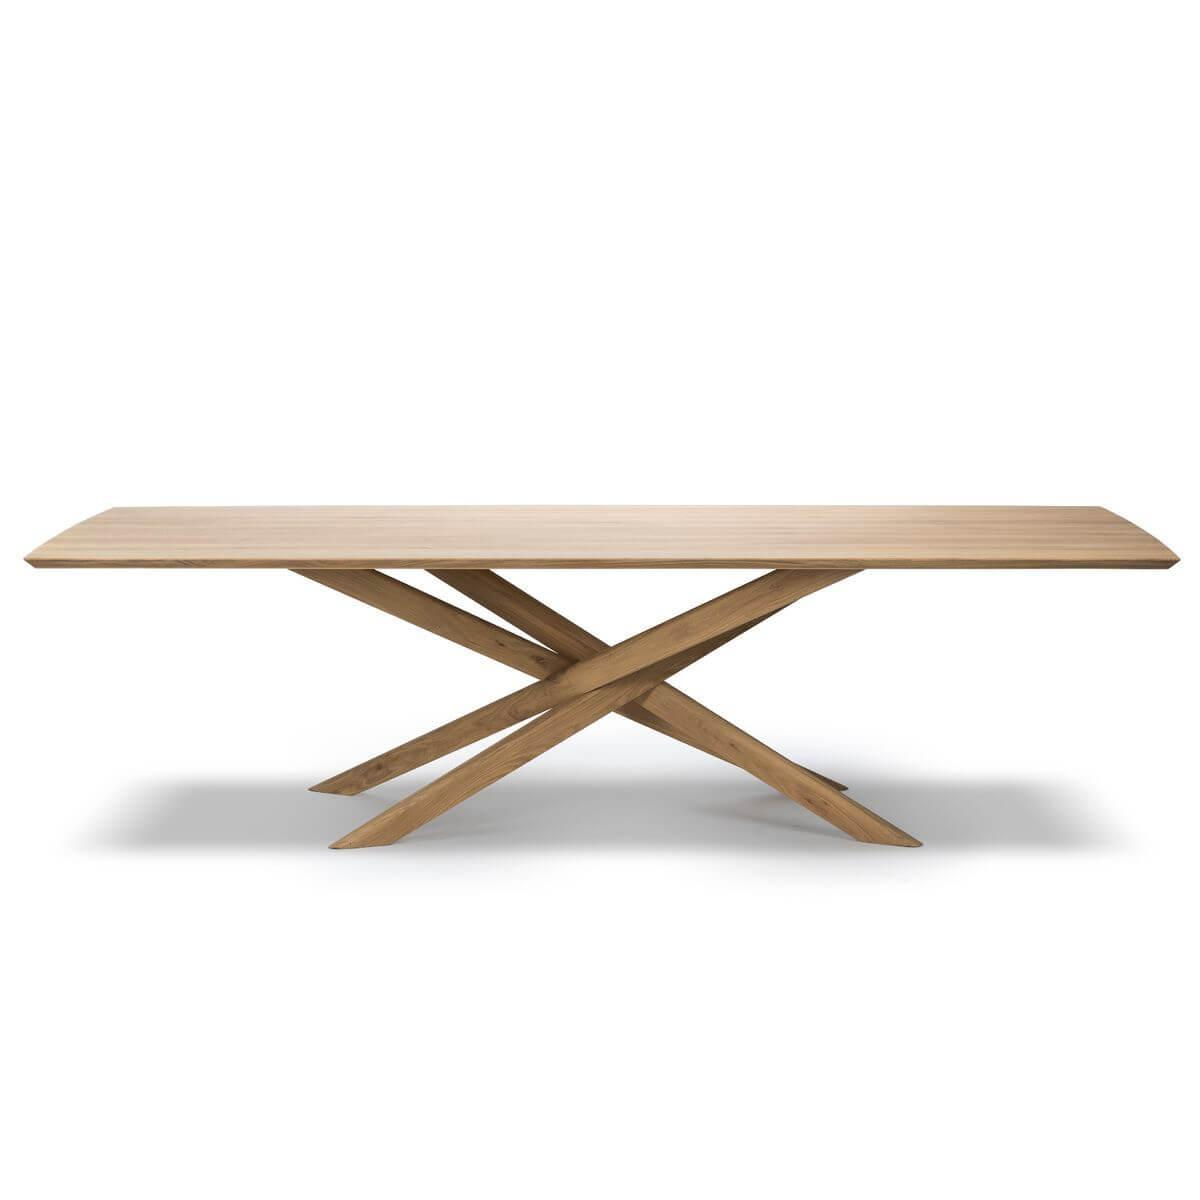 Table 280cm MIKADO Ethnicraft chêne